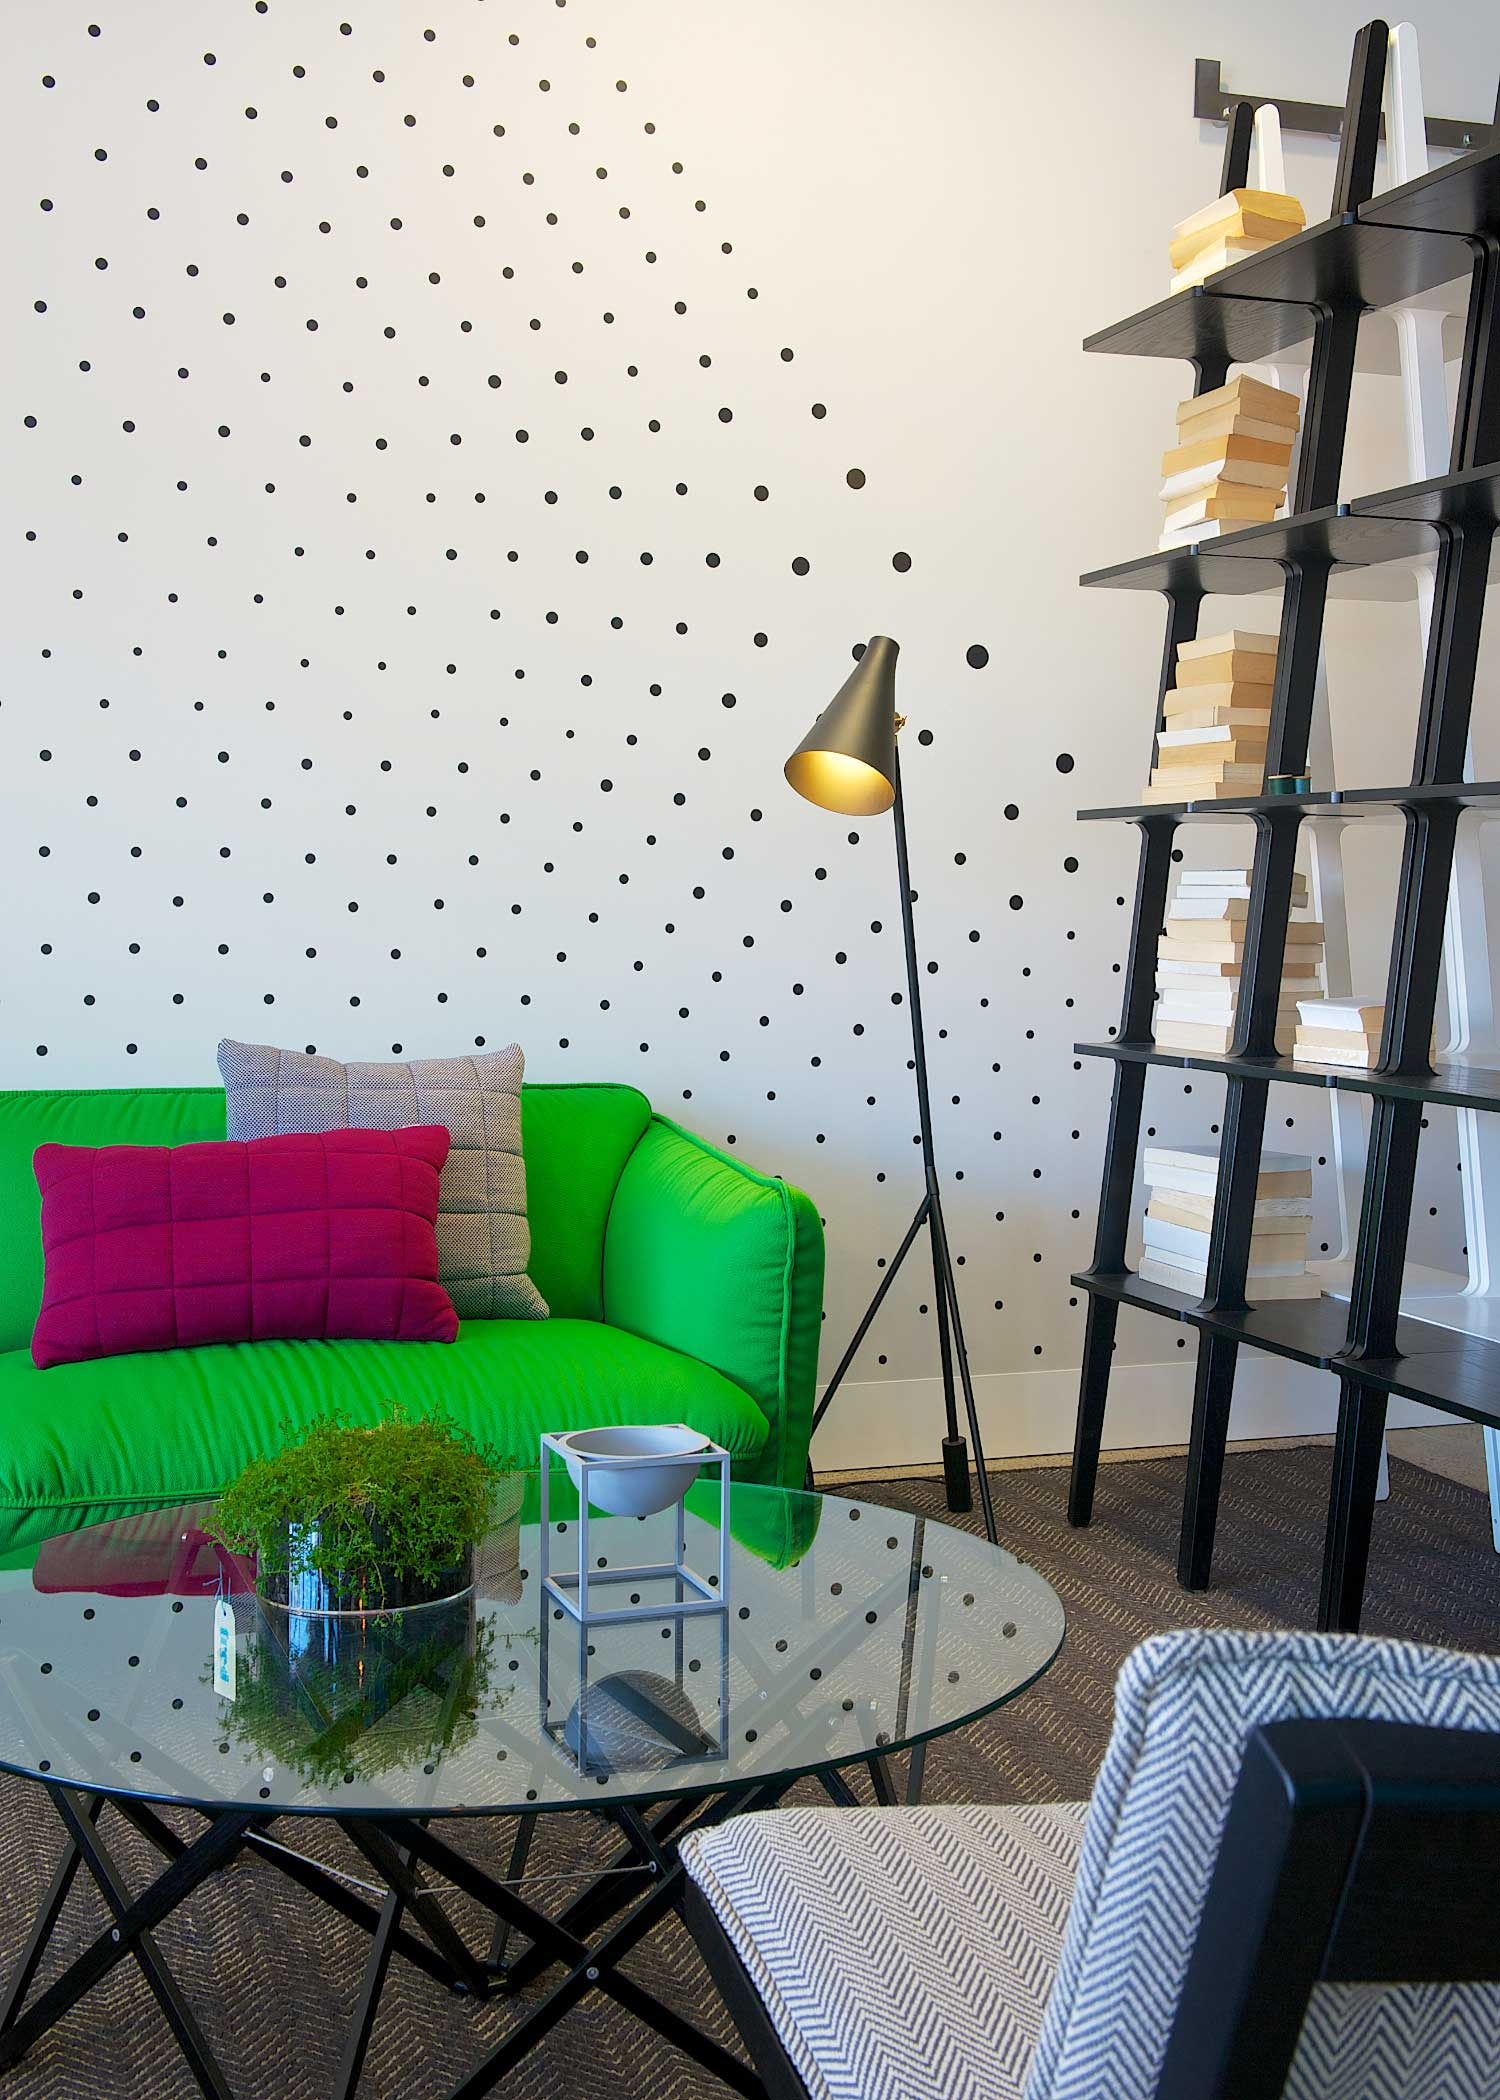 Fred International Sydney Showroom by Yellowtrace. Swedese green Continental Sofa, Muuto Cushions, Karl Anderson & Söner Itomaki coffee table, grey Bowl By Lassen, Ruben Lighting Hunter floor lamp, Swedese Libri bookshelves in black and white, Swedese Cruiser Armchair, Armadillo & Co Herringbone Weave rug, Custom black dot wall decal by War Design.